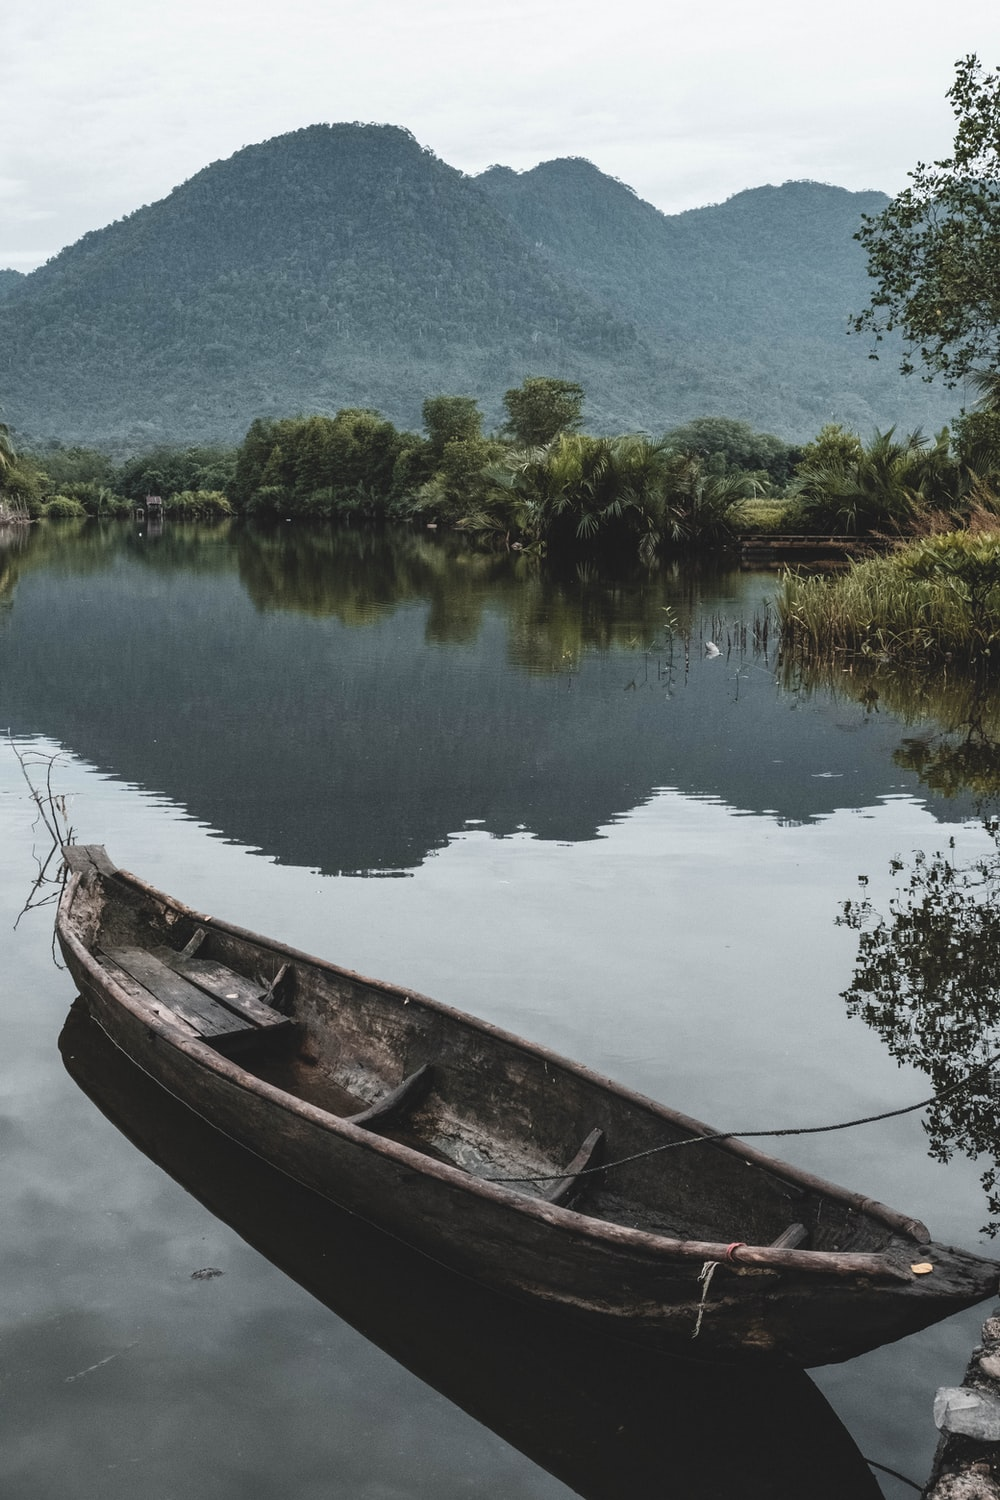 brown canoe on calm body of water near trees